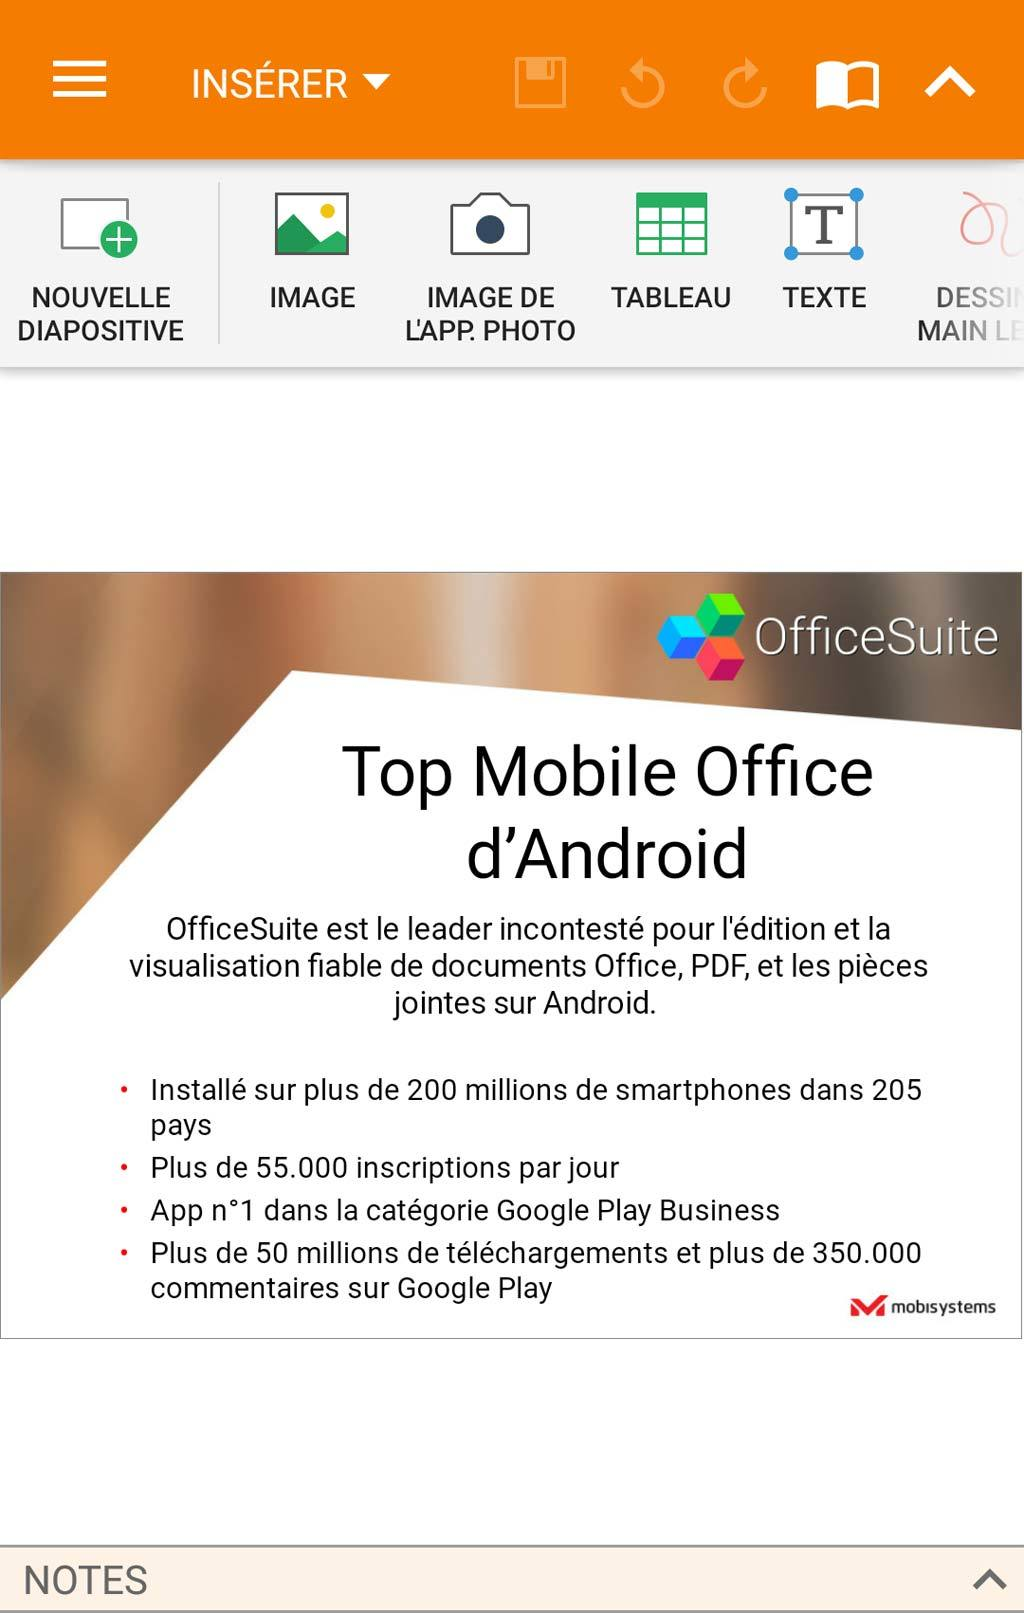 OfficeSuite Premium - 1 Year screenshot 5